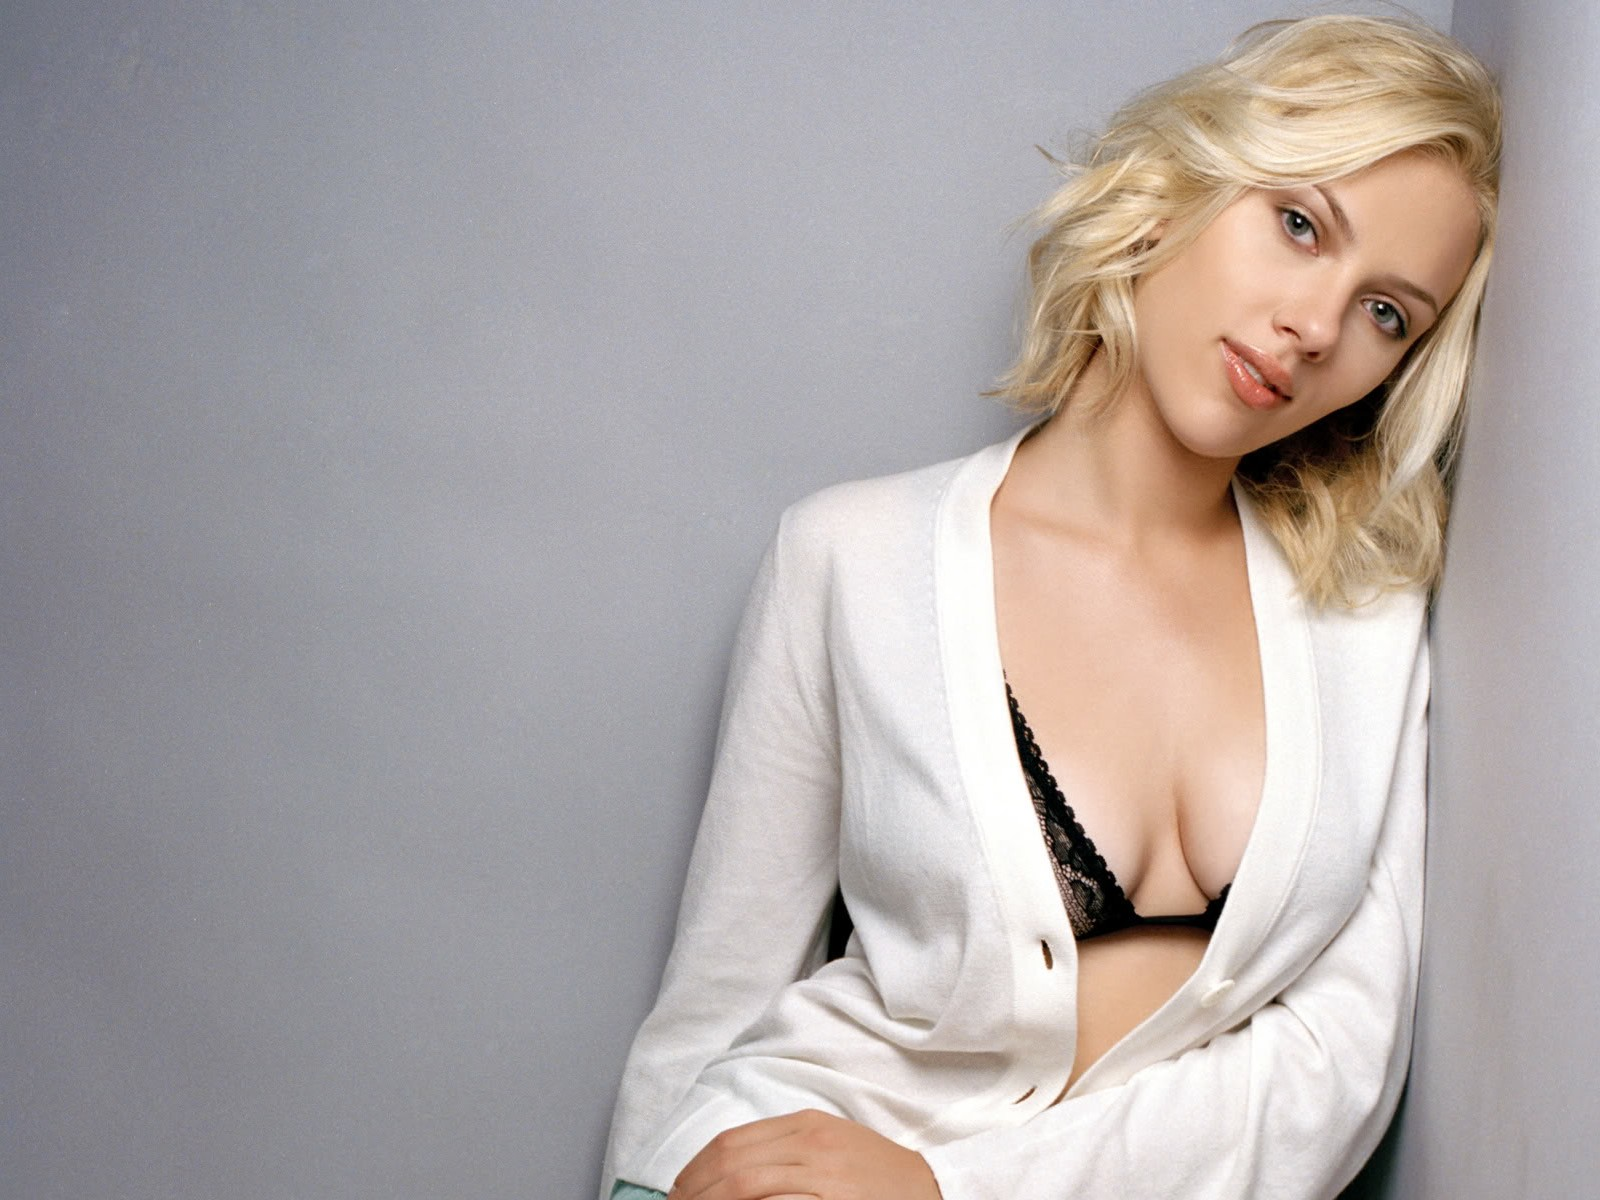 All Wallpapers Scarlett Johansson New Wallpapers 2013